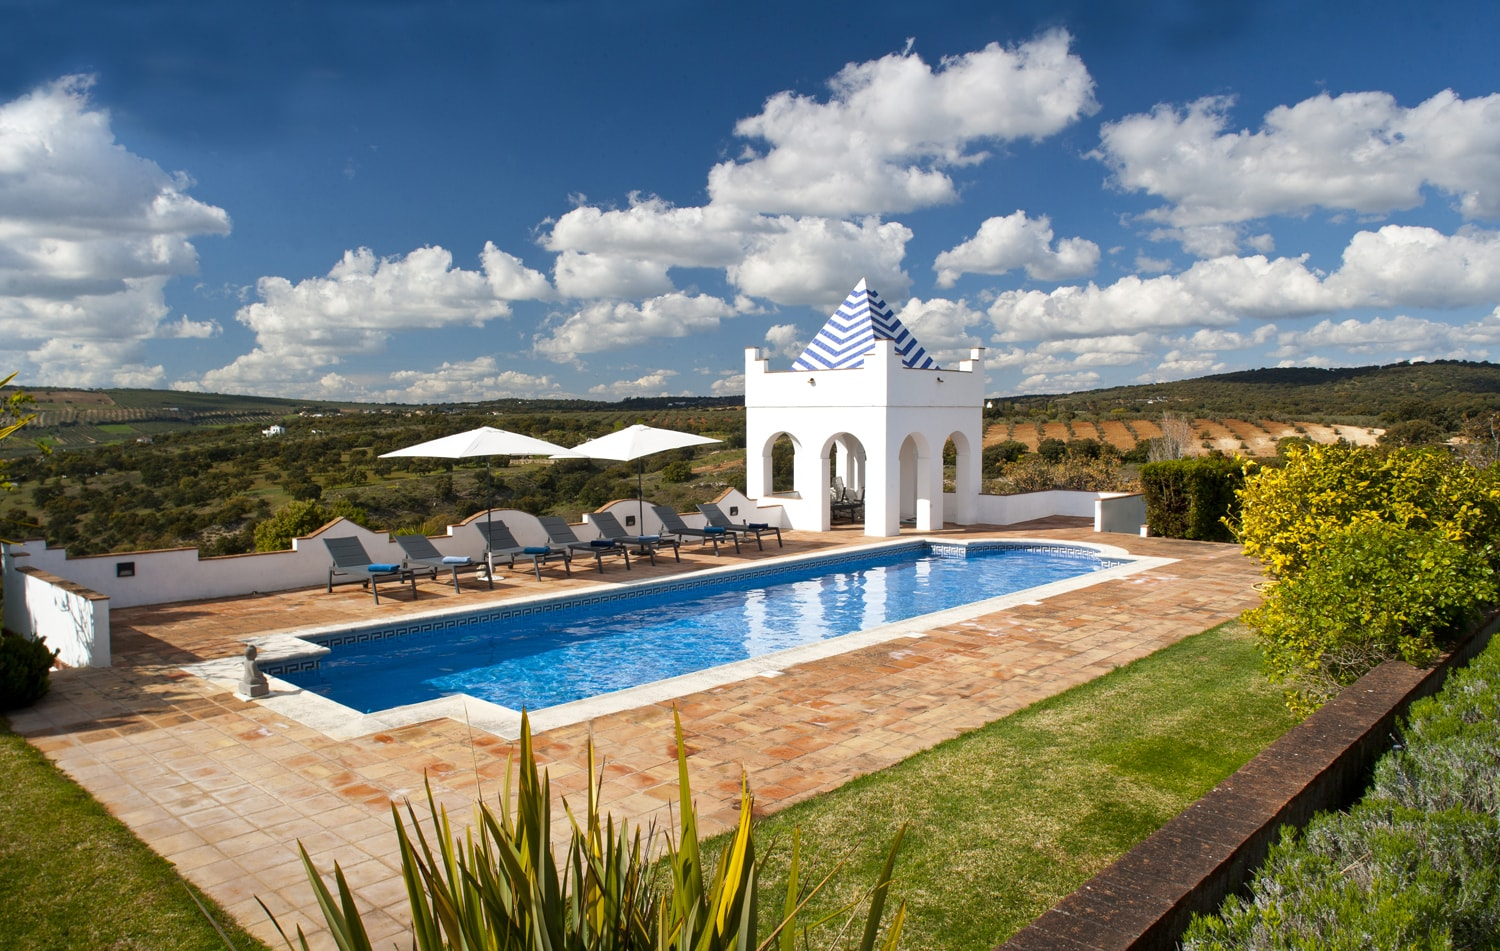 swimming pool villa spain